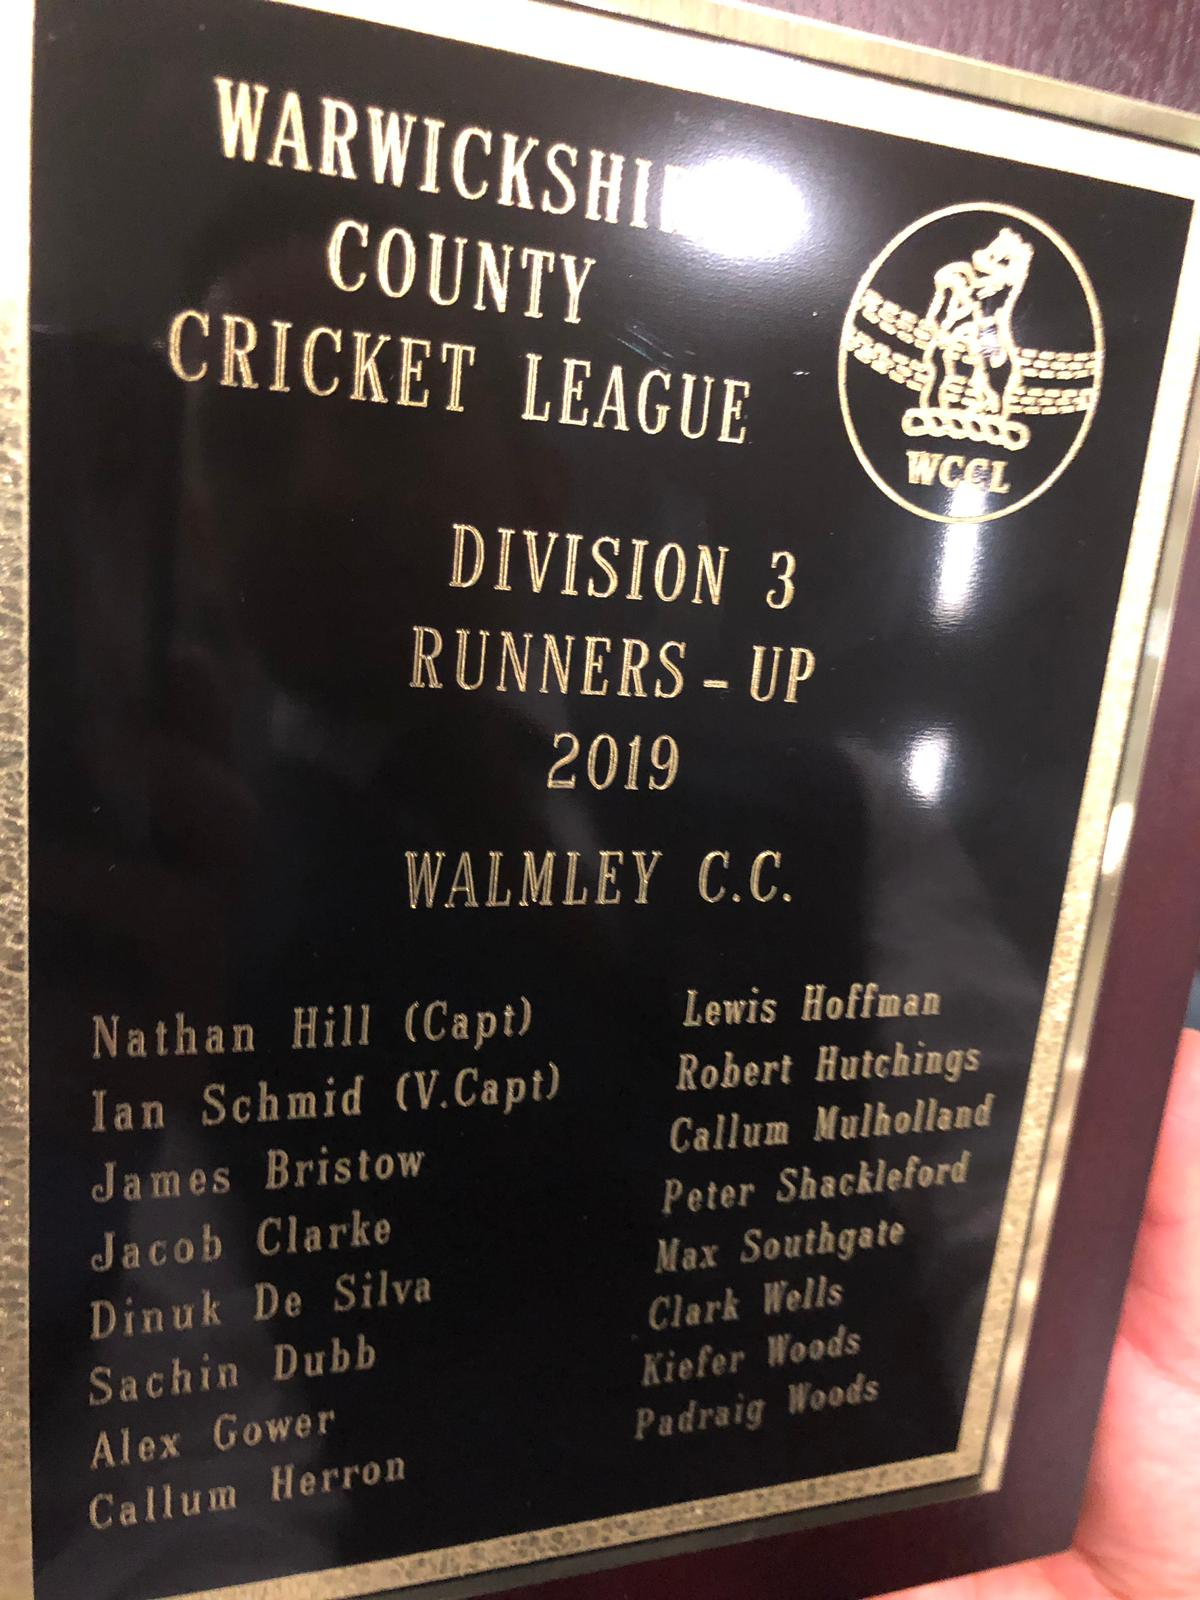 Warwickshire Cricket League Division 3 Second Team Runners Up